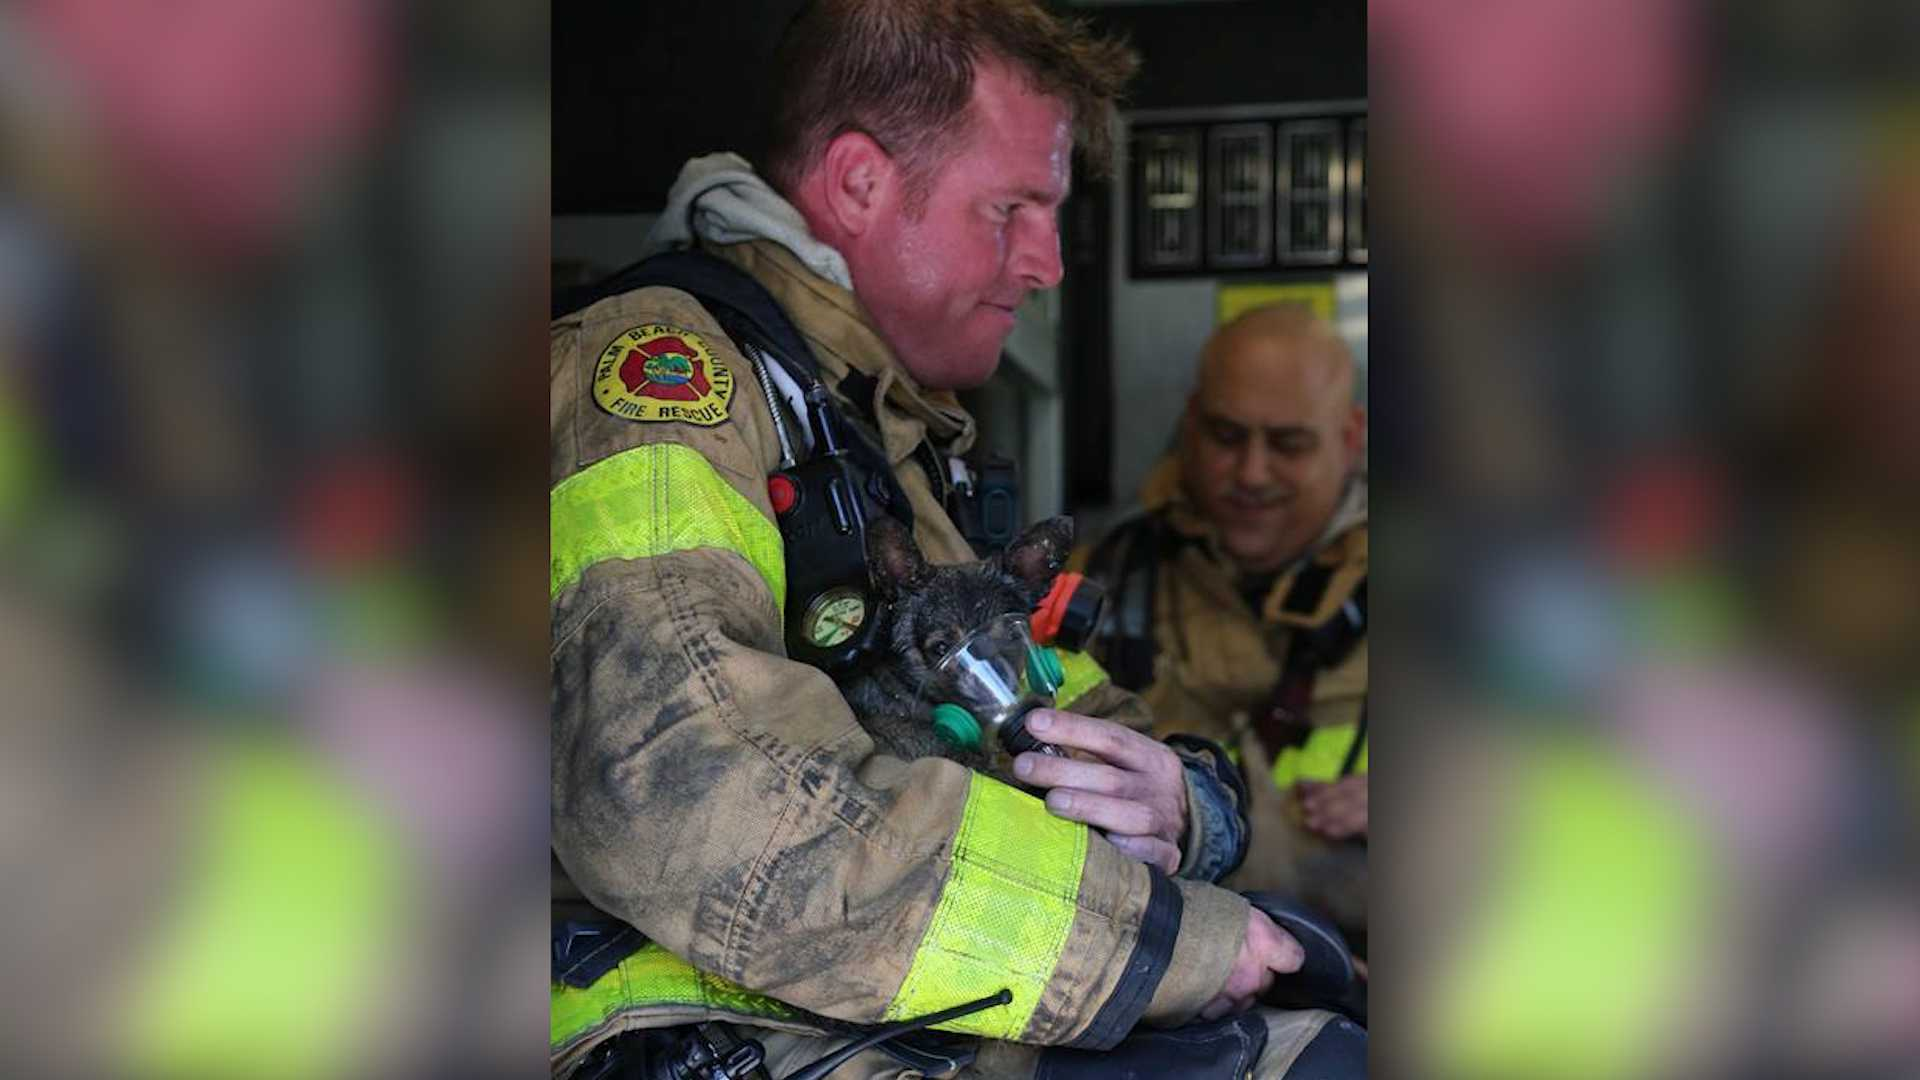 South Florida firefighters find new ways to protect pets from fires using stickers